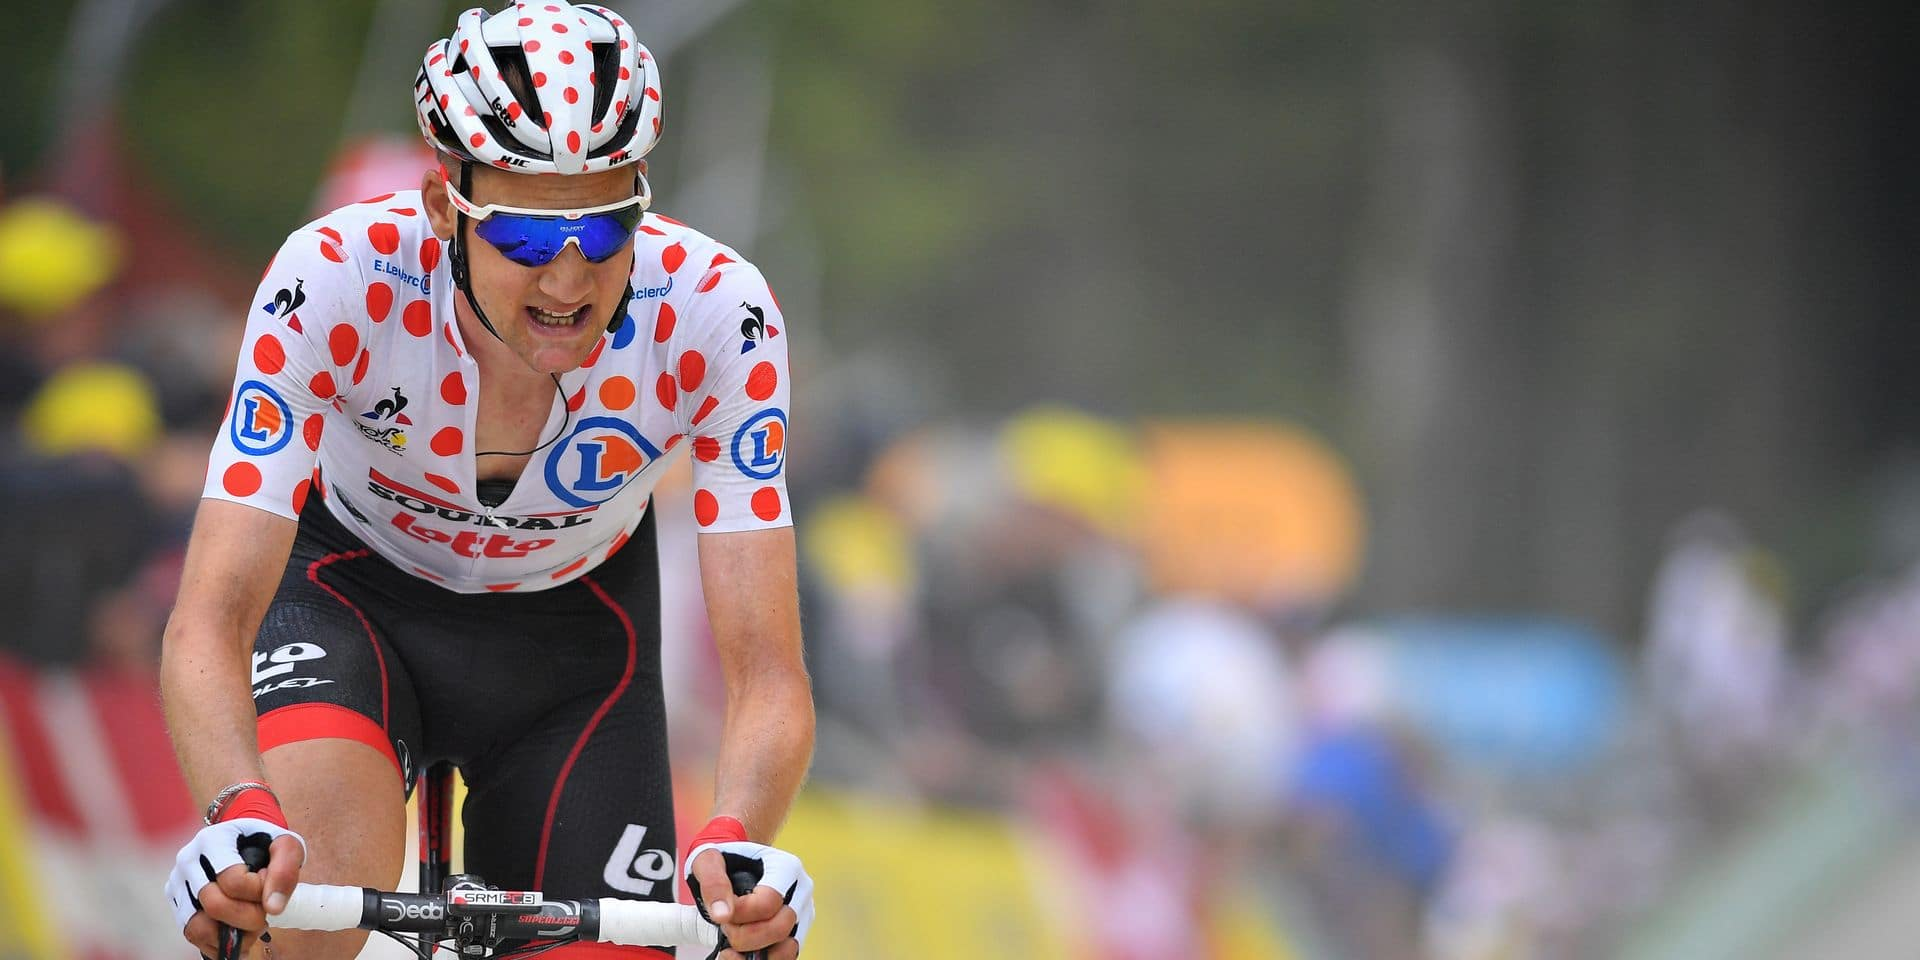 Belgian Tim Wellens of Lotto Soudal pictured in action during the sixth stage of the 106th edition of the Tour de France cycling race, from Mulhouse - La Planche des Belles Filles (160,5 km), Thursday 11 July 2019 in France. This year's Tour de France starts in Brussels and takes place from July 6th to July 28th. BELGA PHOTO DAVID STOCKMAN